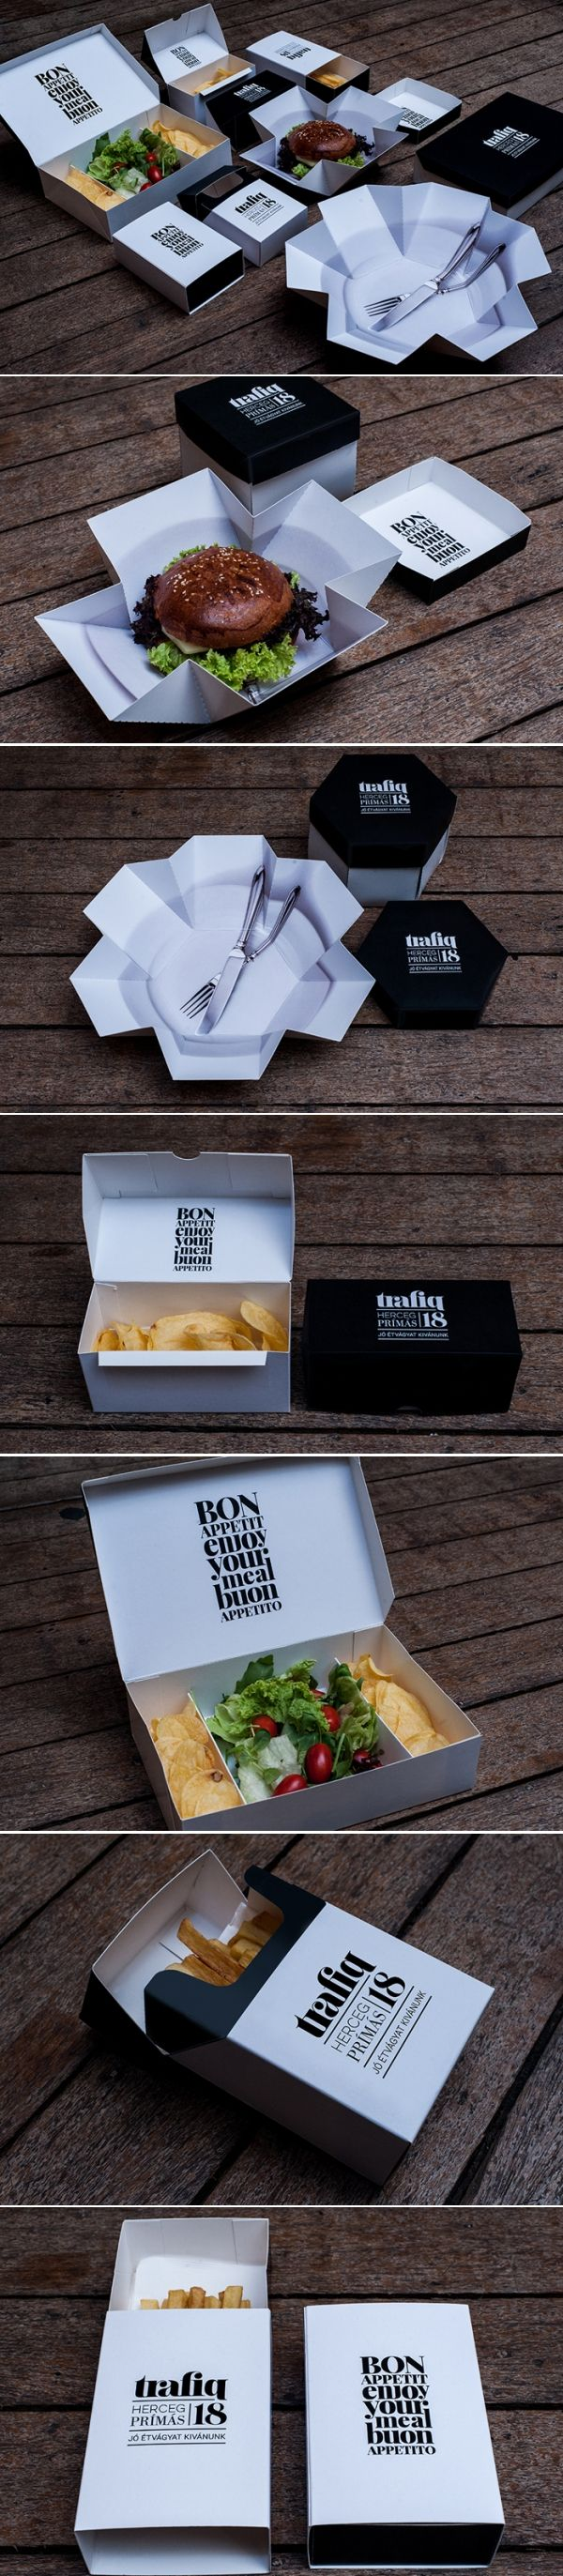 Food Packaging that - visually - slows things down? Design For Food